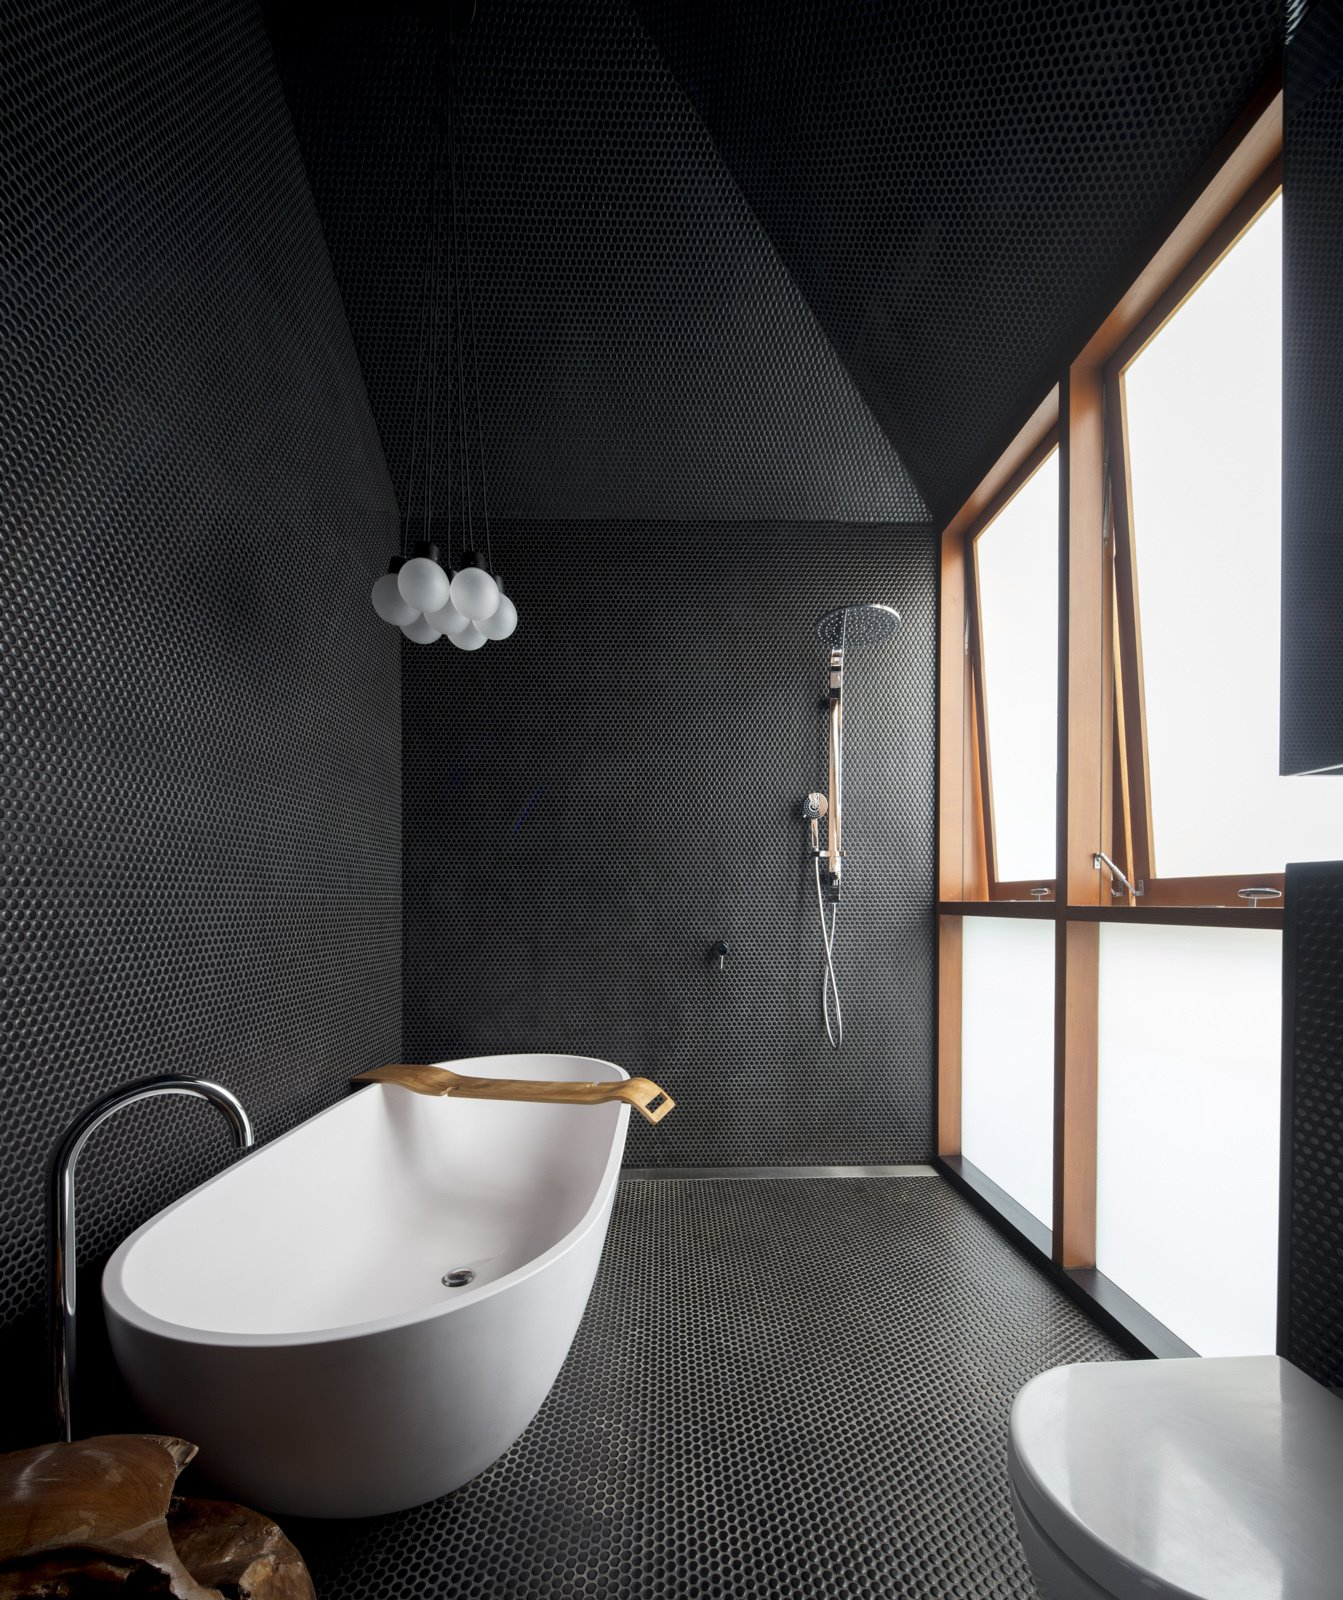 Bath, Freestanding, Open, Pendant, Porcelain Tile, Mosaic Tile, and One Piece The bathroom continues the black perforated theme, and features an asymmetric pitched roof.    Bath Mosaic Tile One Piece Open Photos from A Dark Sydney Home Finds Light With a Unifying Expansion